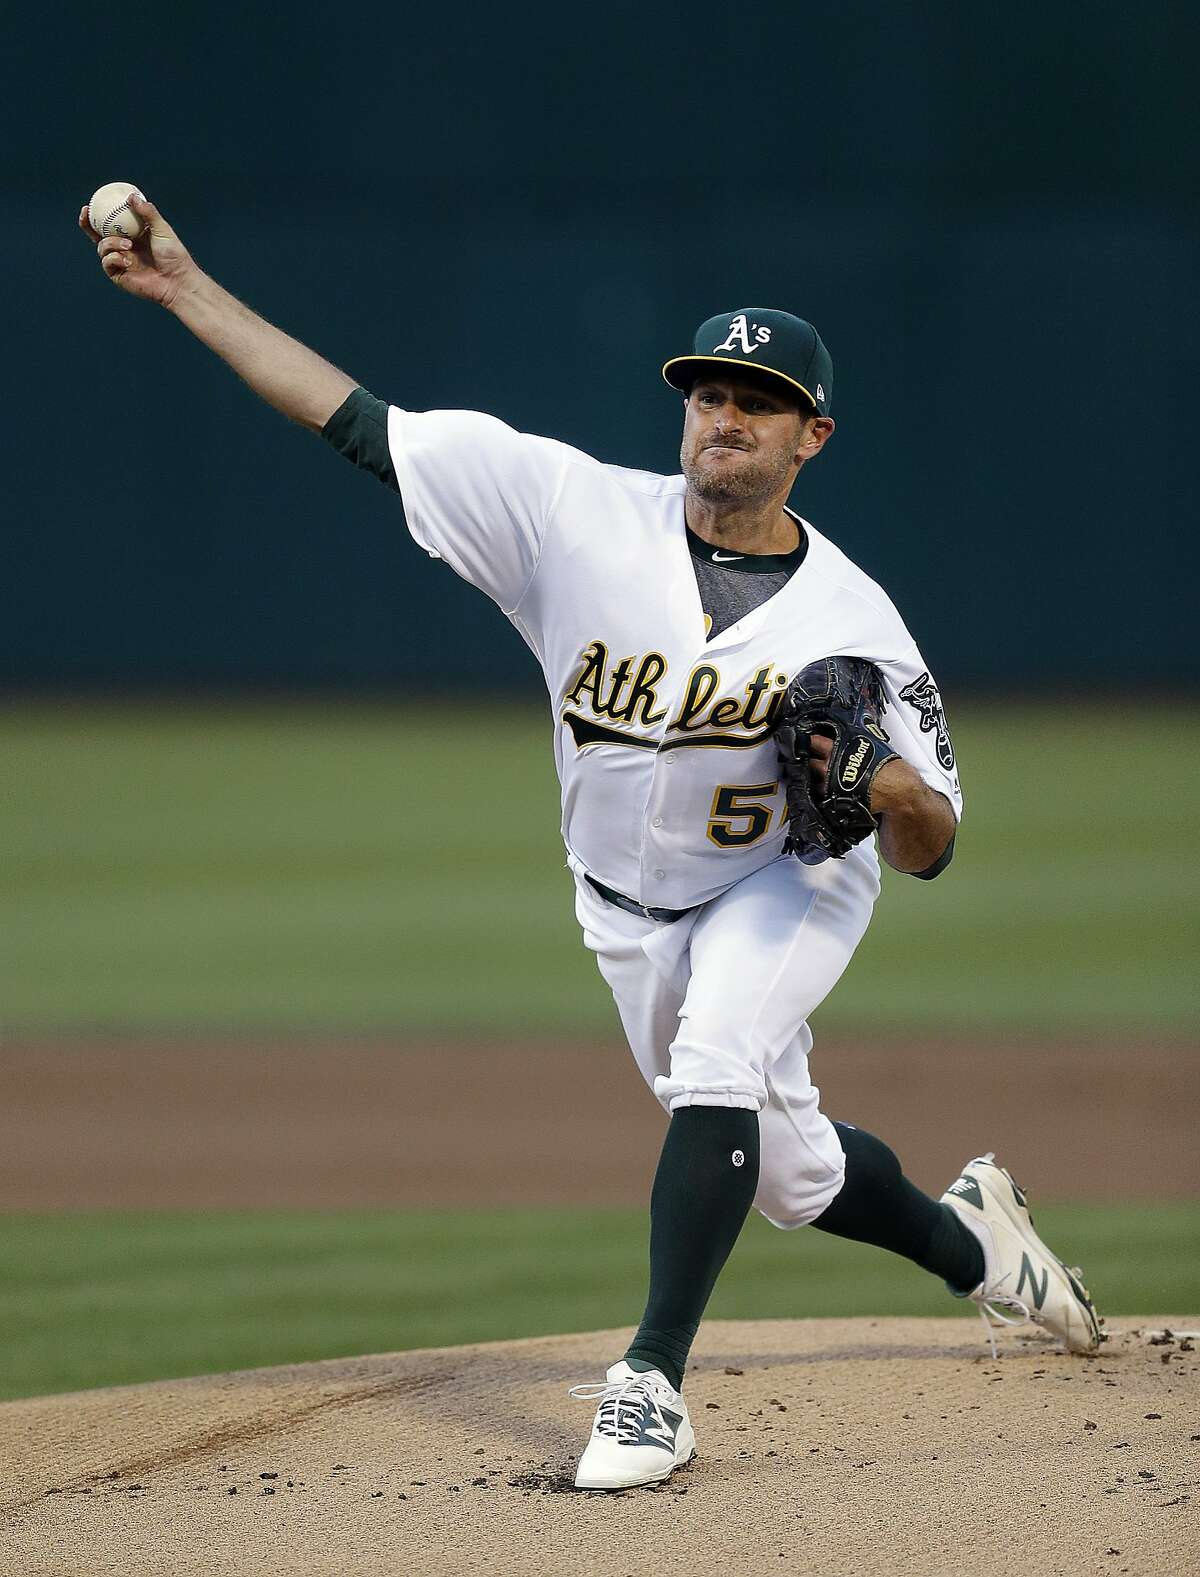 Oakland Athletics pitcher Chris Smith works against the Tampa Bay Rays during the first inning of a baseball game Tuesday, July 18, 2017, in Oakland, Calif. (AP Photo/Ben Margot)